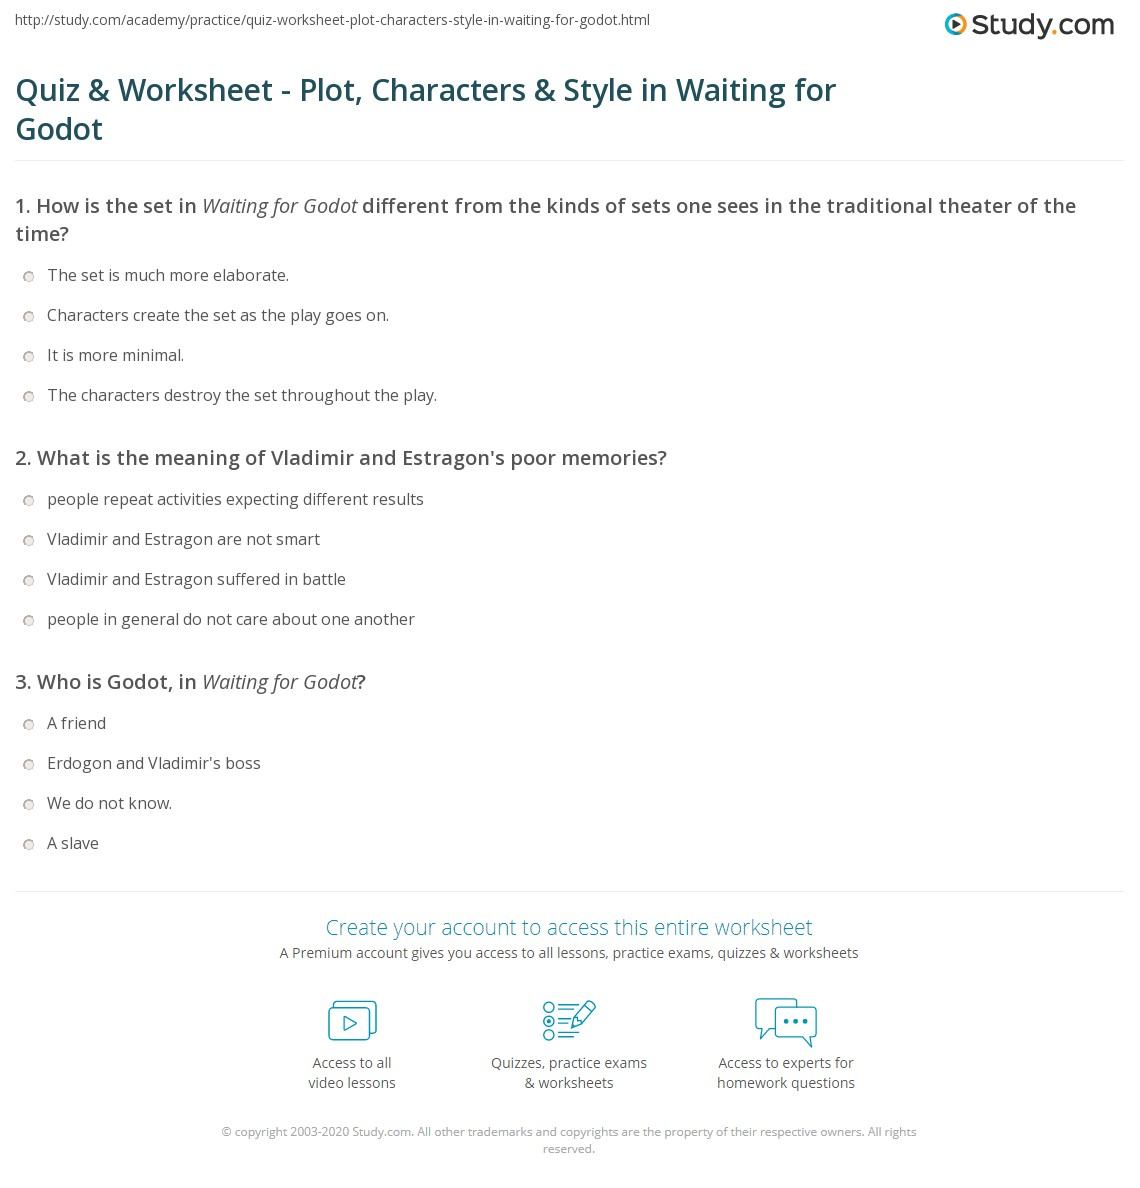 quiz worksheet plot characters style in waiting for godot print waiting for godot plot characters and style worksheet